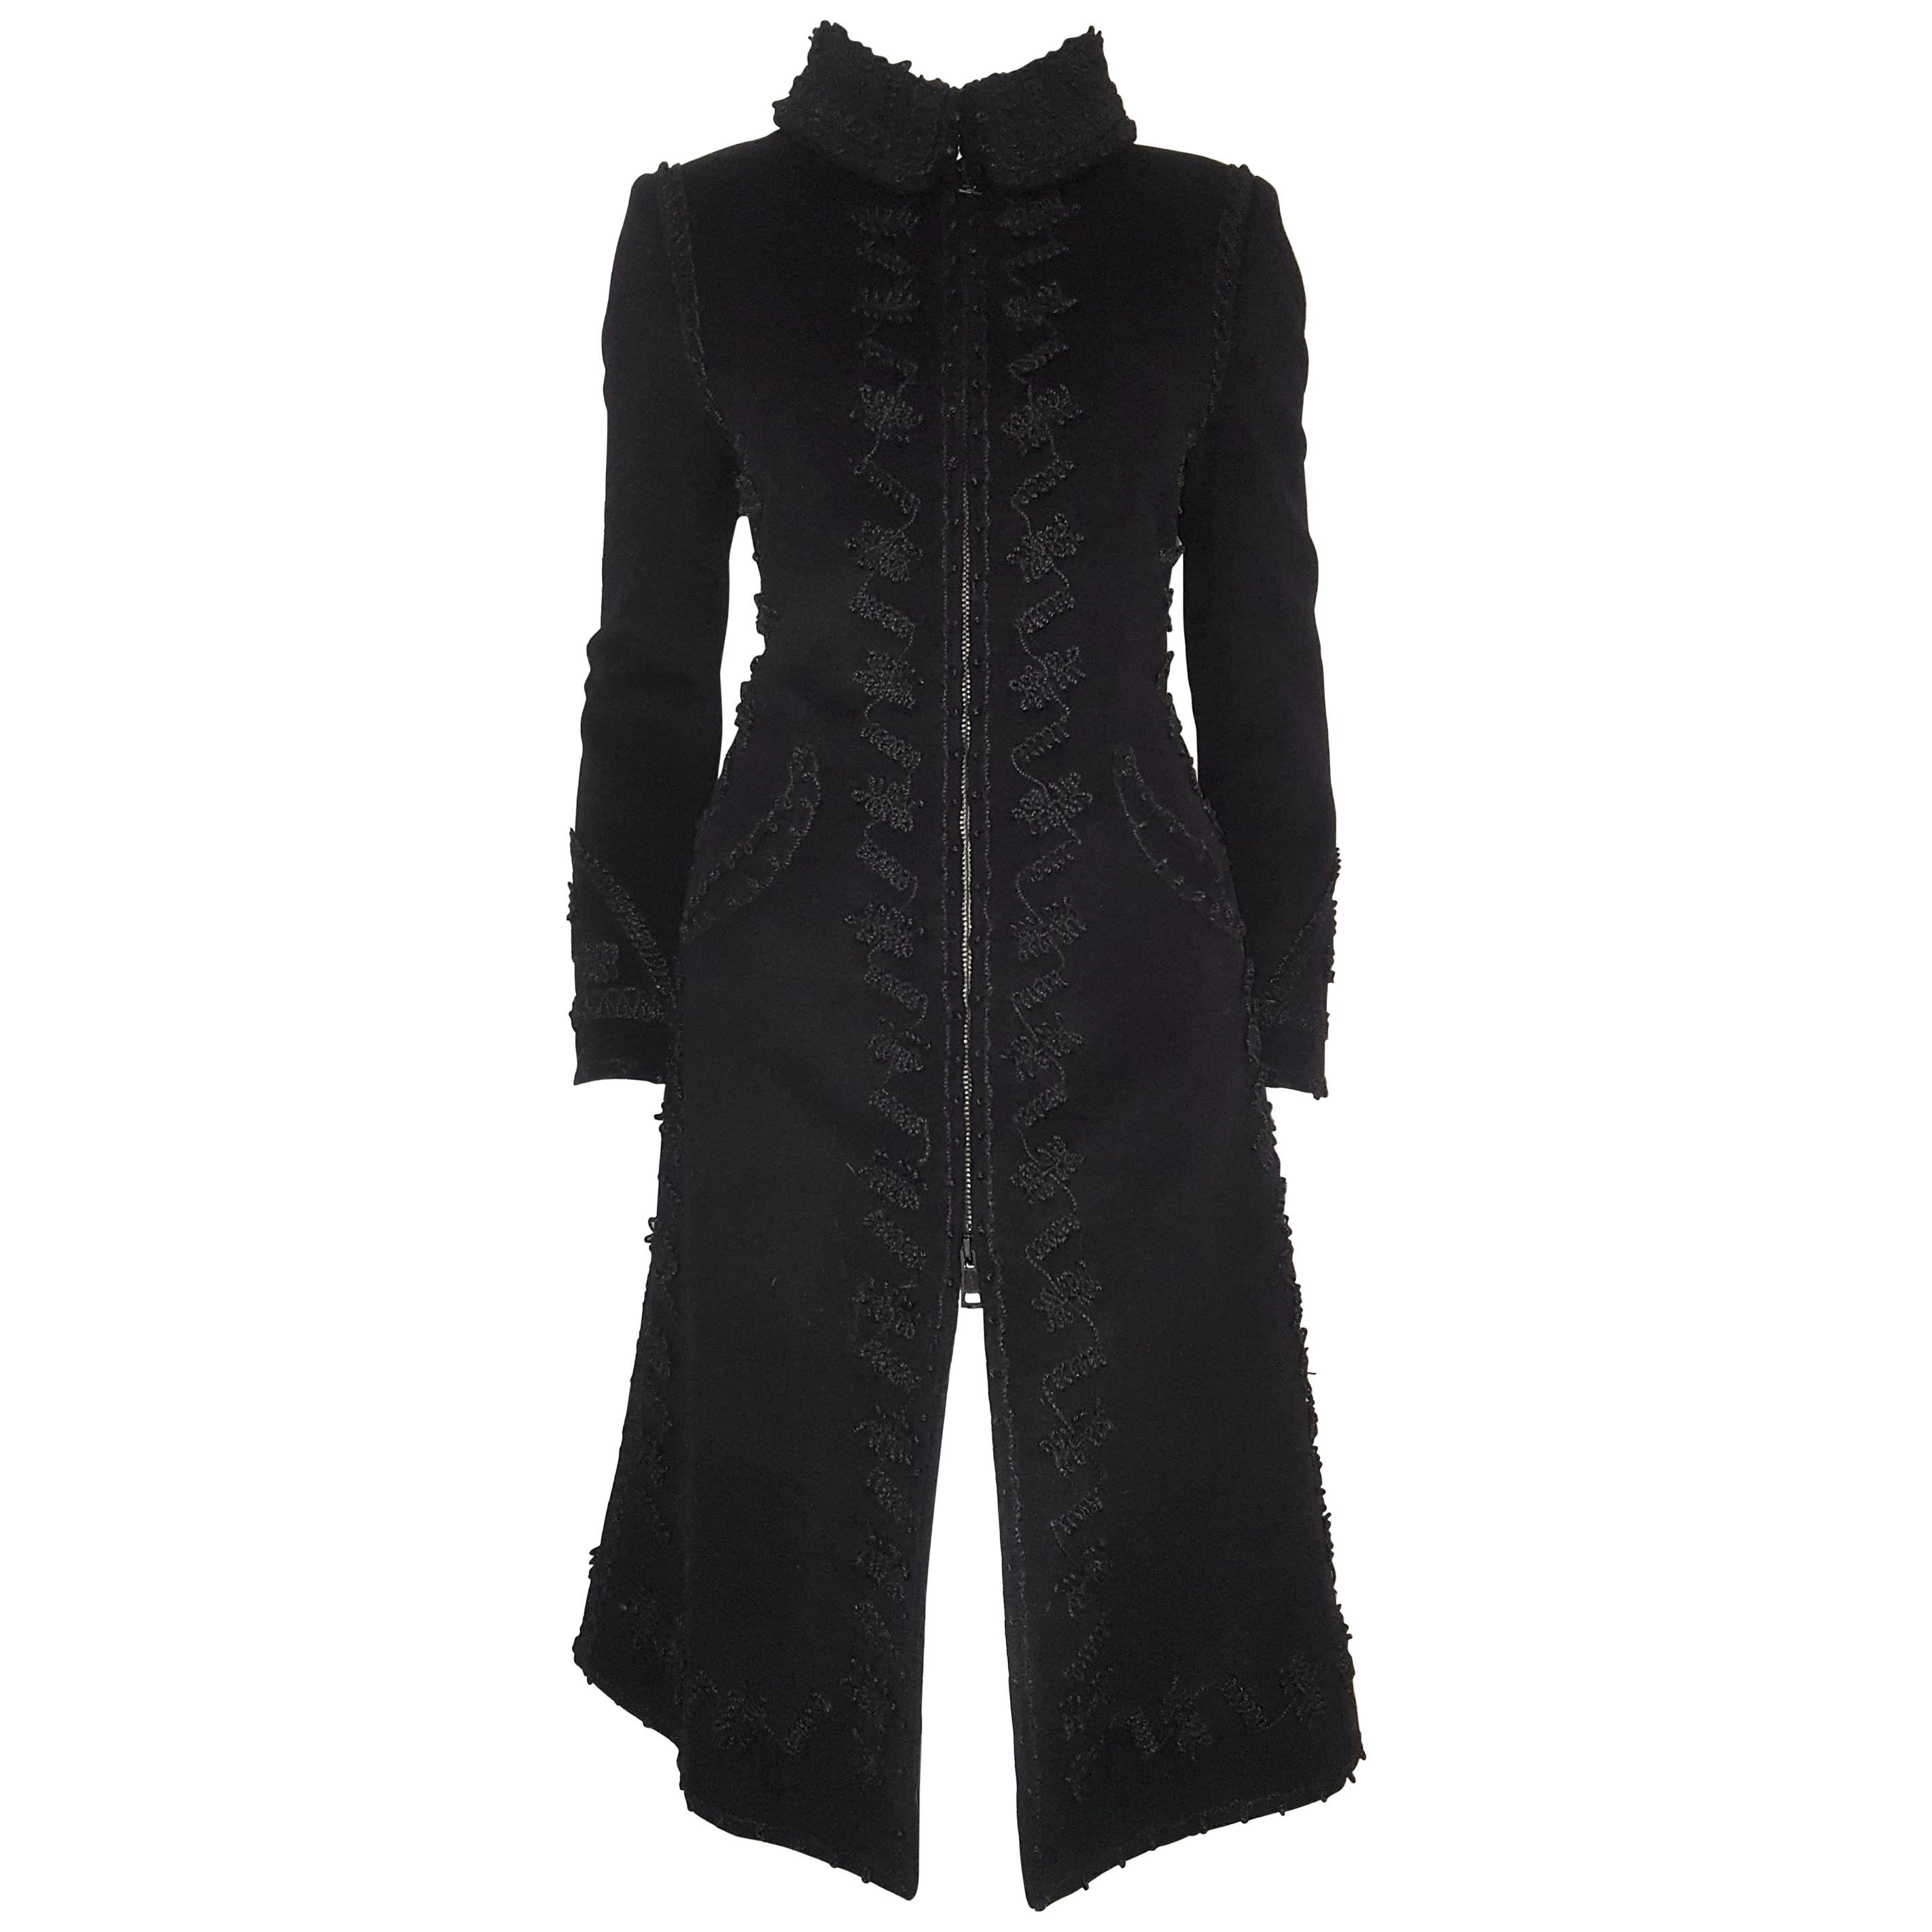 Two Wool Virgin Front Way Embroidered Zipper Moschino Coat Closure W Black qHw6T